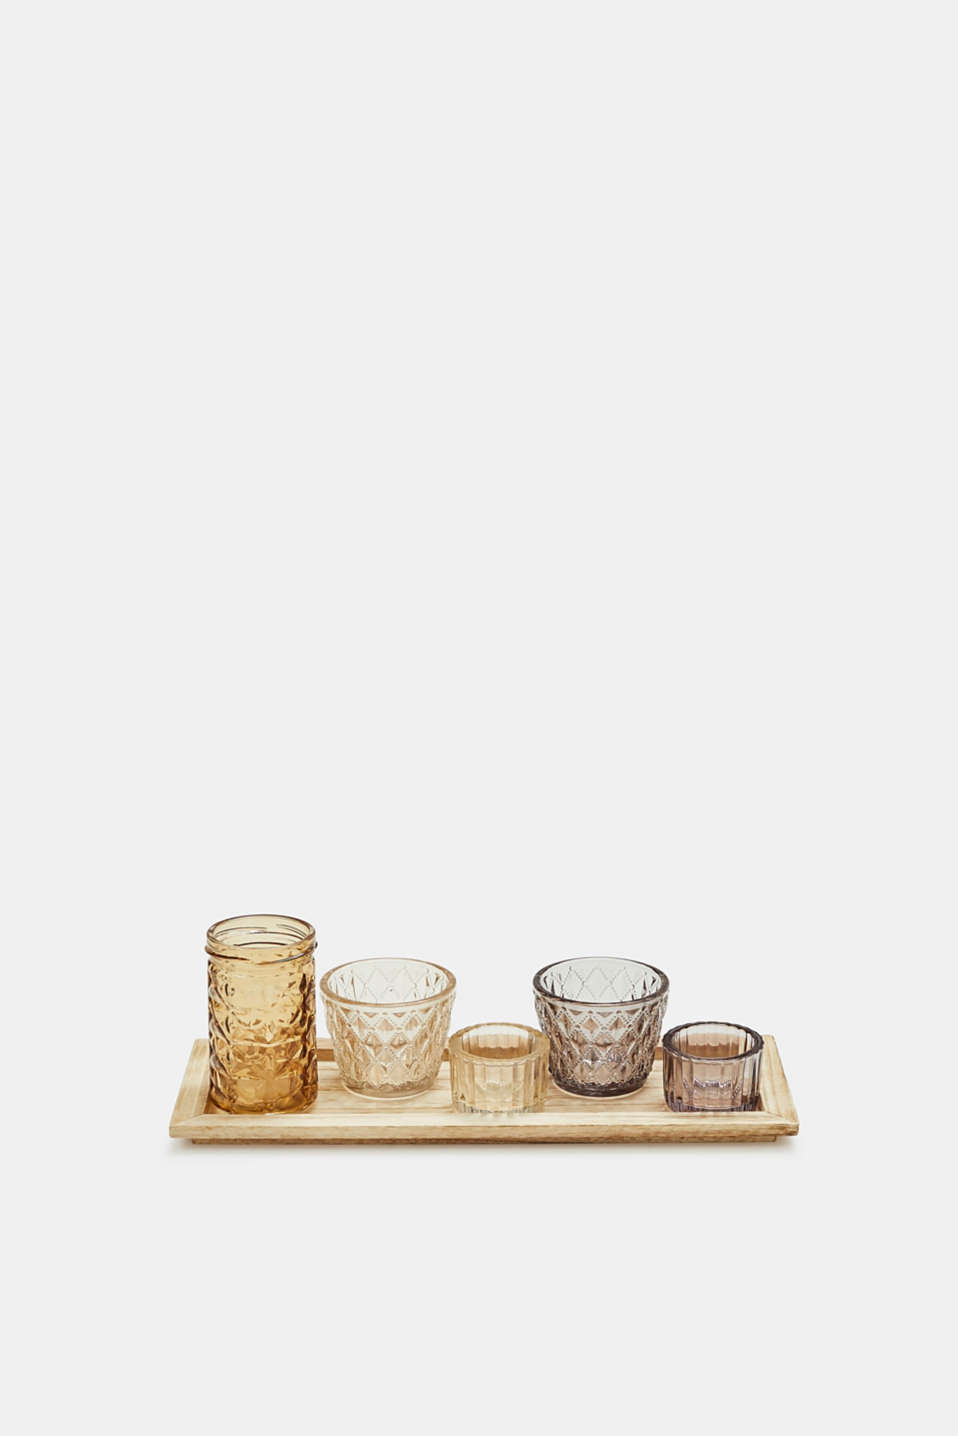 Esprit - Tealight set in wood and glass